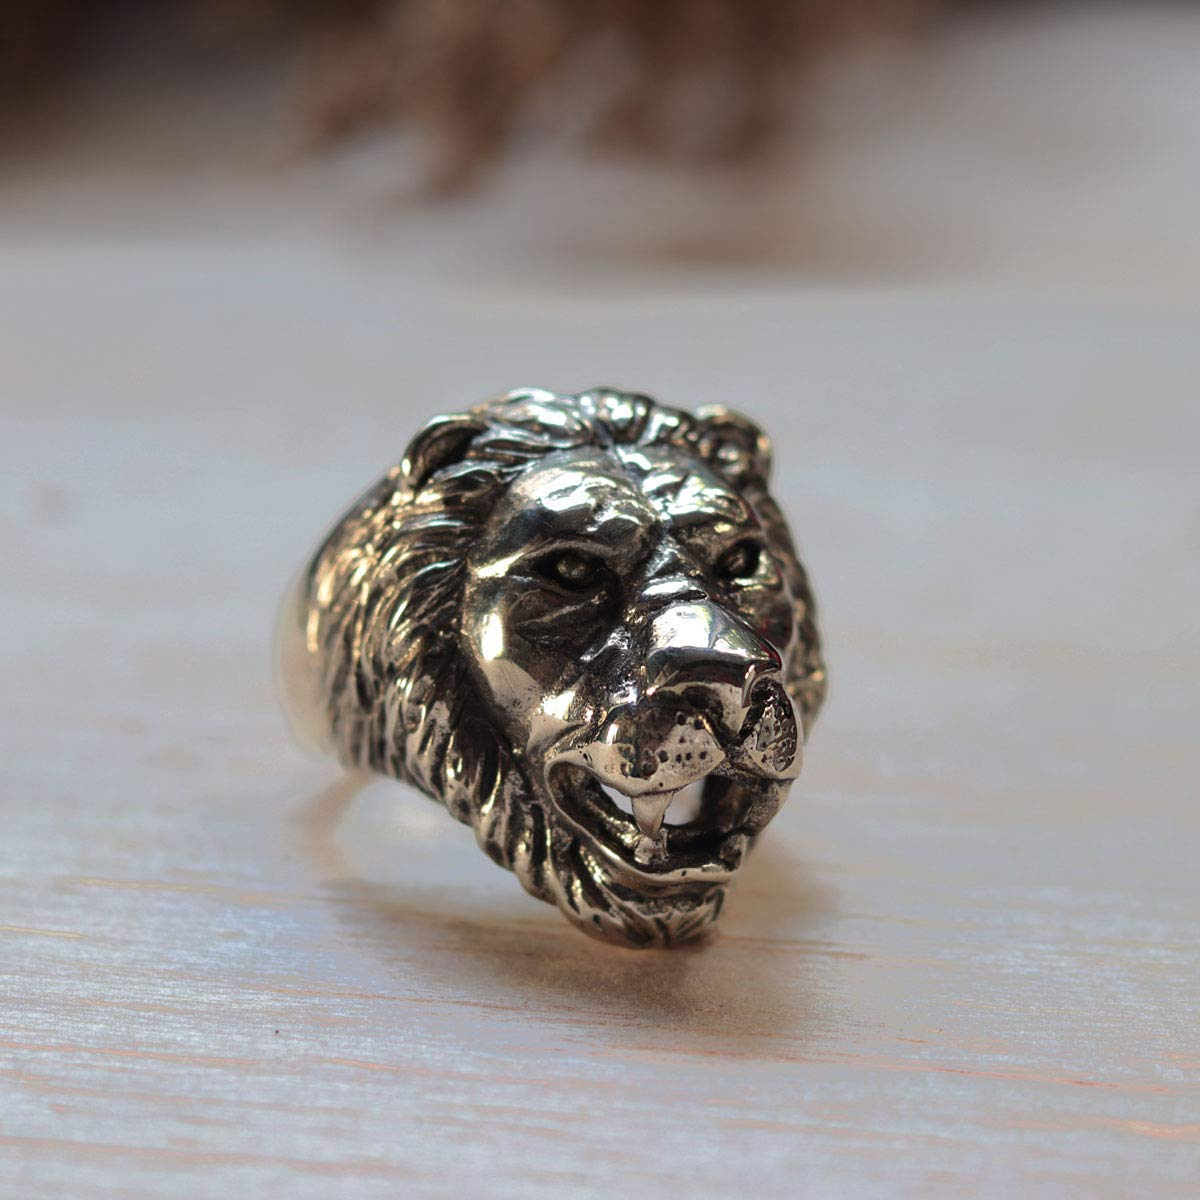 Details about  /LION RING RASTA LION LION ZIRCONIA STONES SILVER RING 925 REAL SILVER JEWELRY